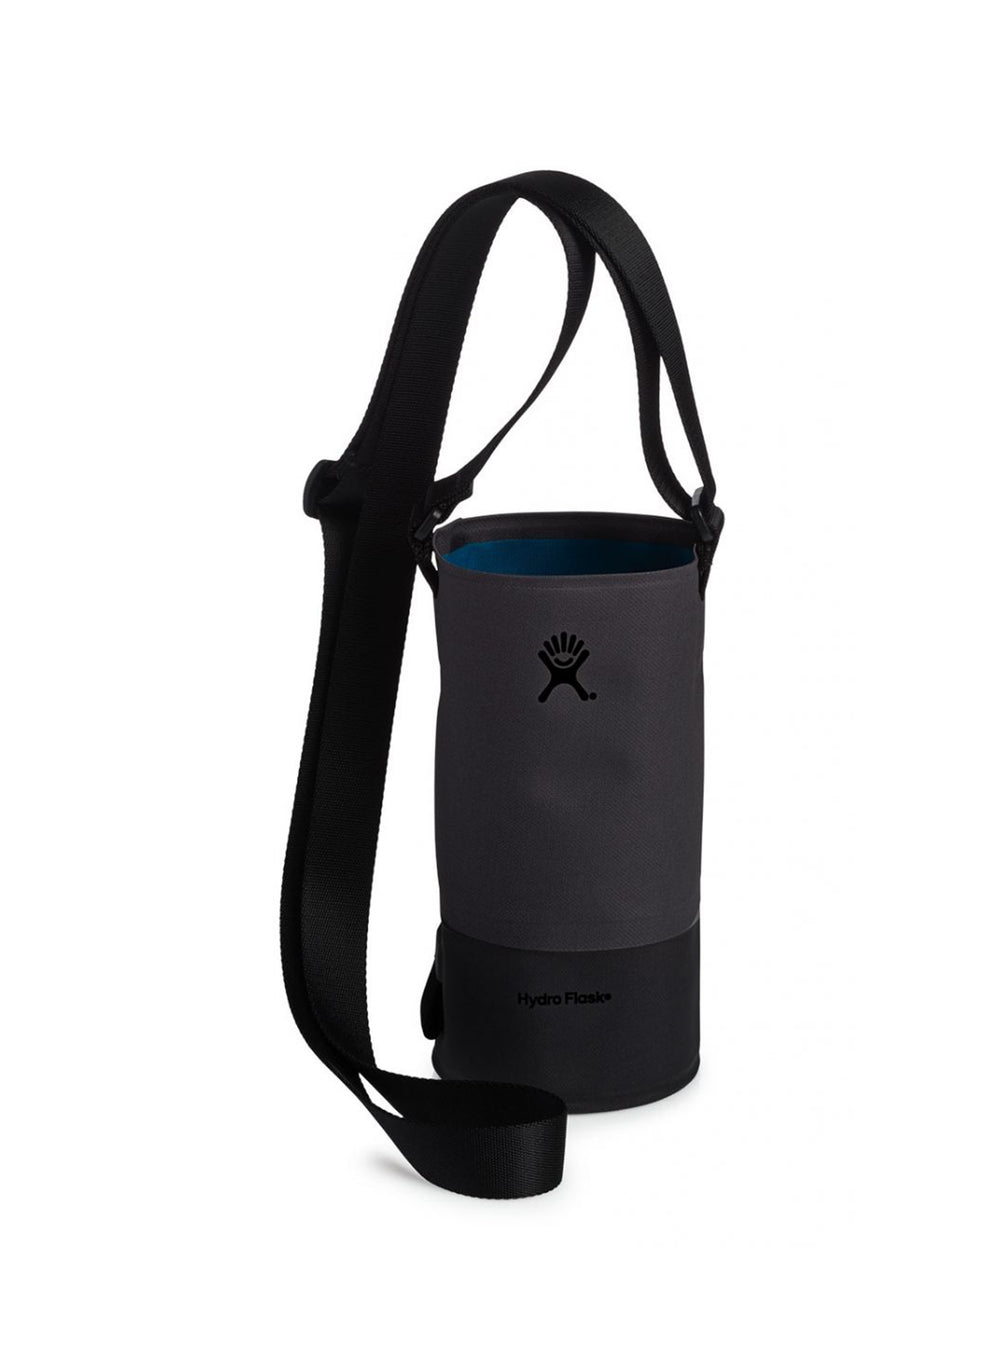 Hydro Flask Tag Along Bottle Sling Medium